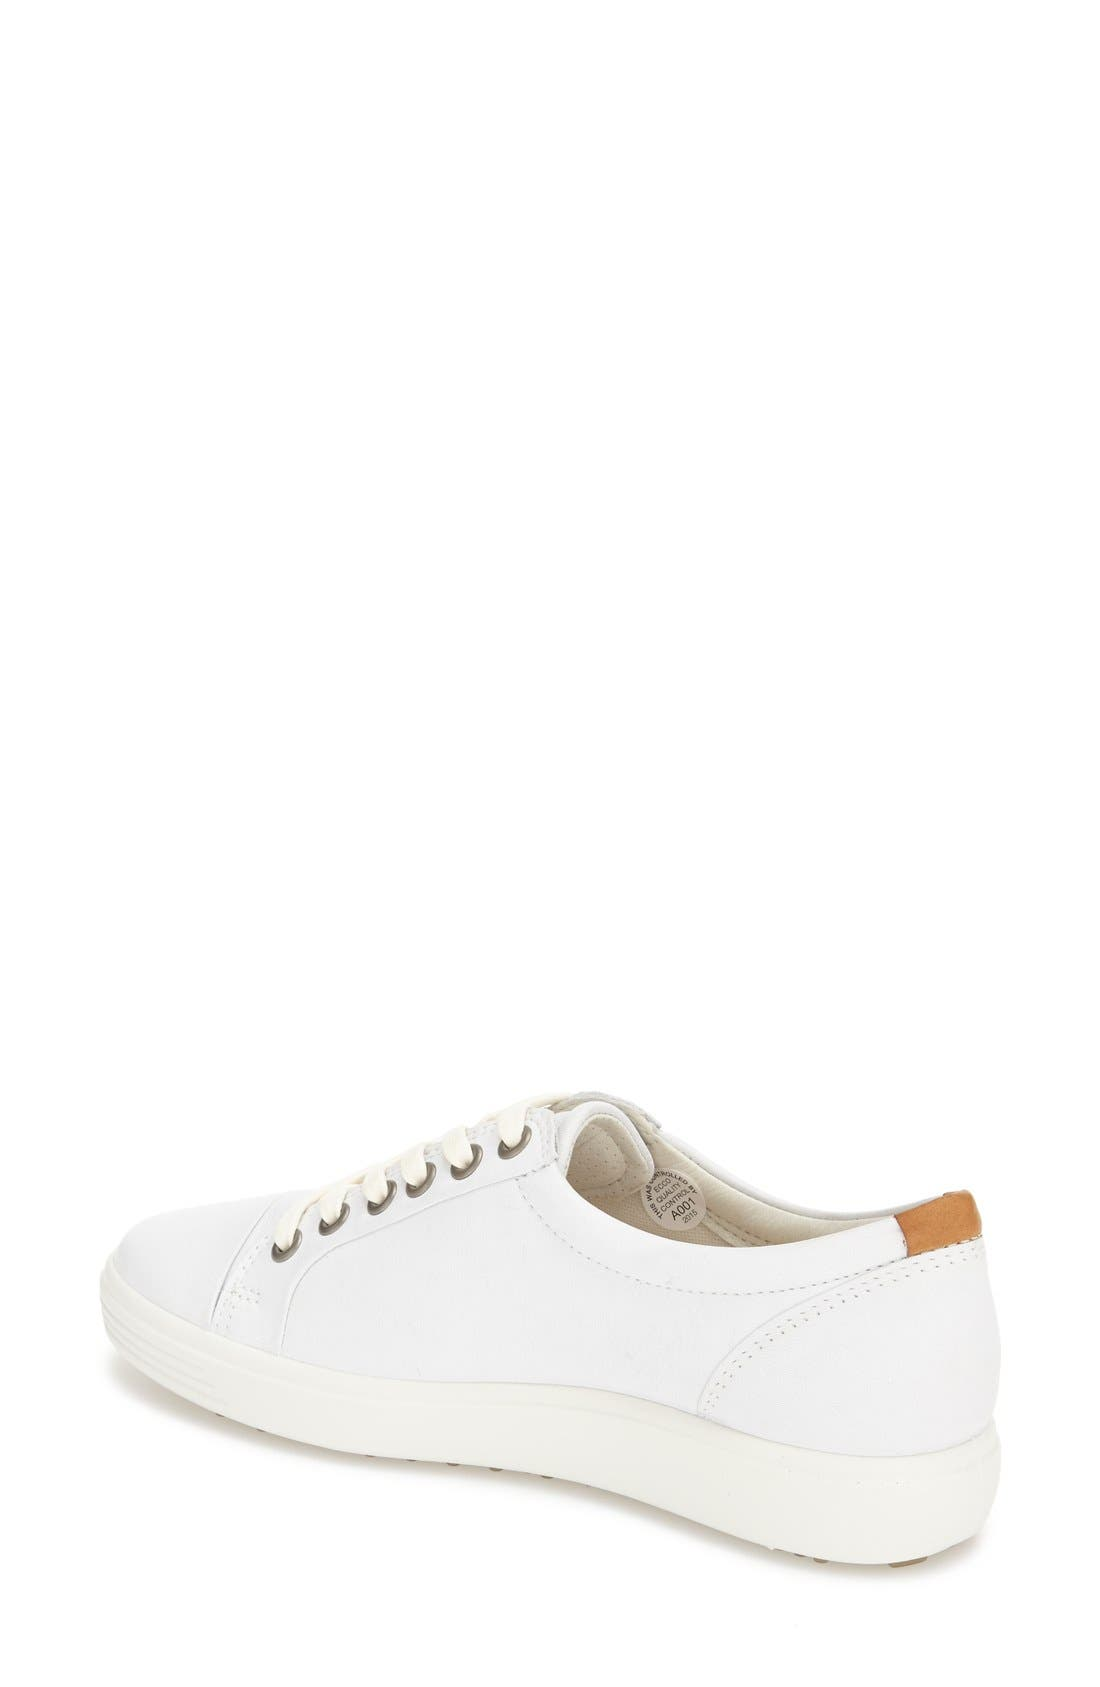 'Soft 7' Cap Toe Sneaker,                             Alternate thumbnail 2, color,                             White